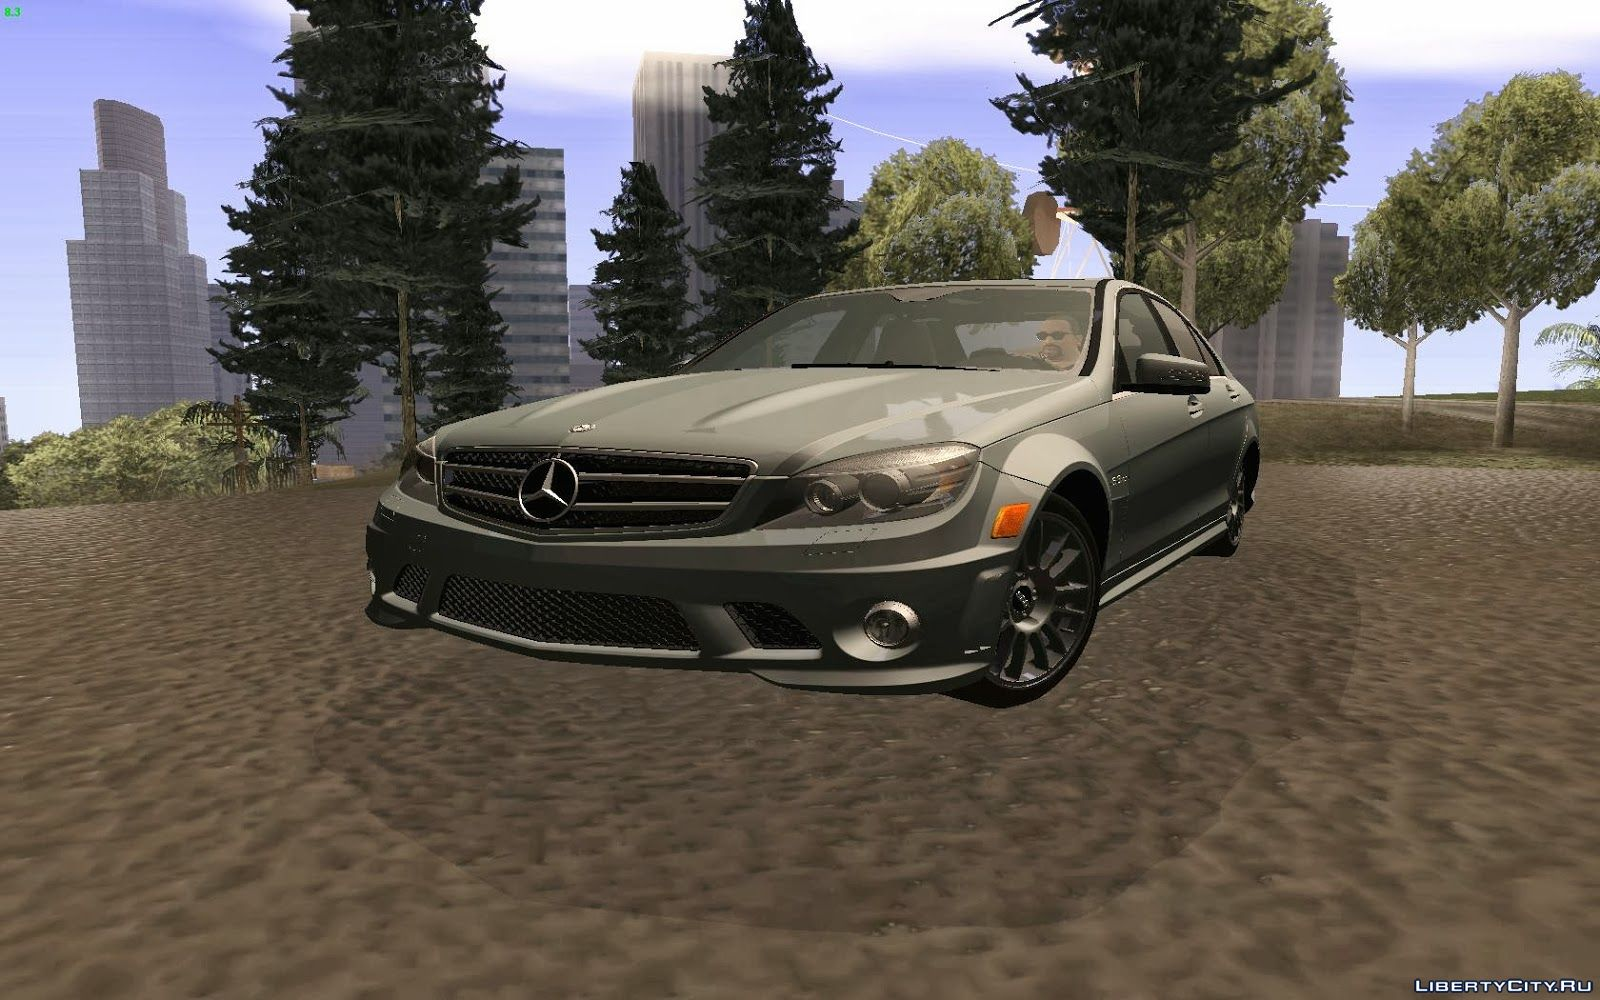 Files for GTA: mods, cars / Page 3176